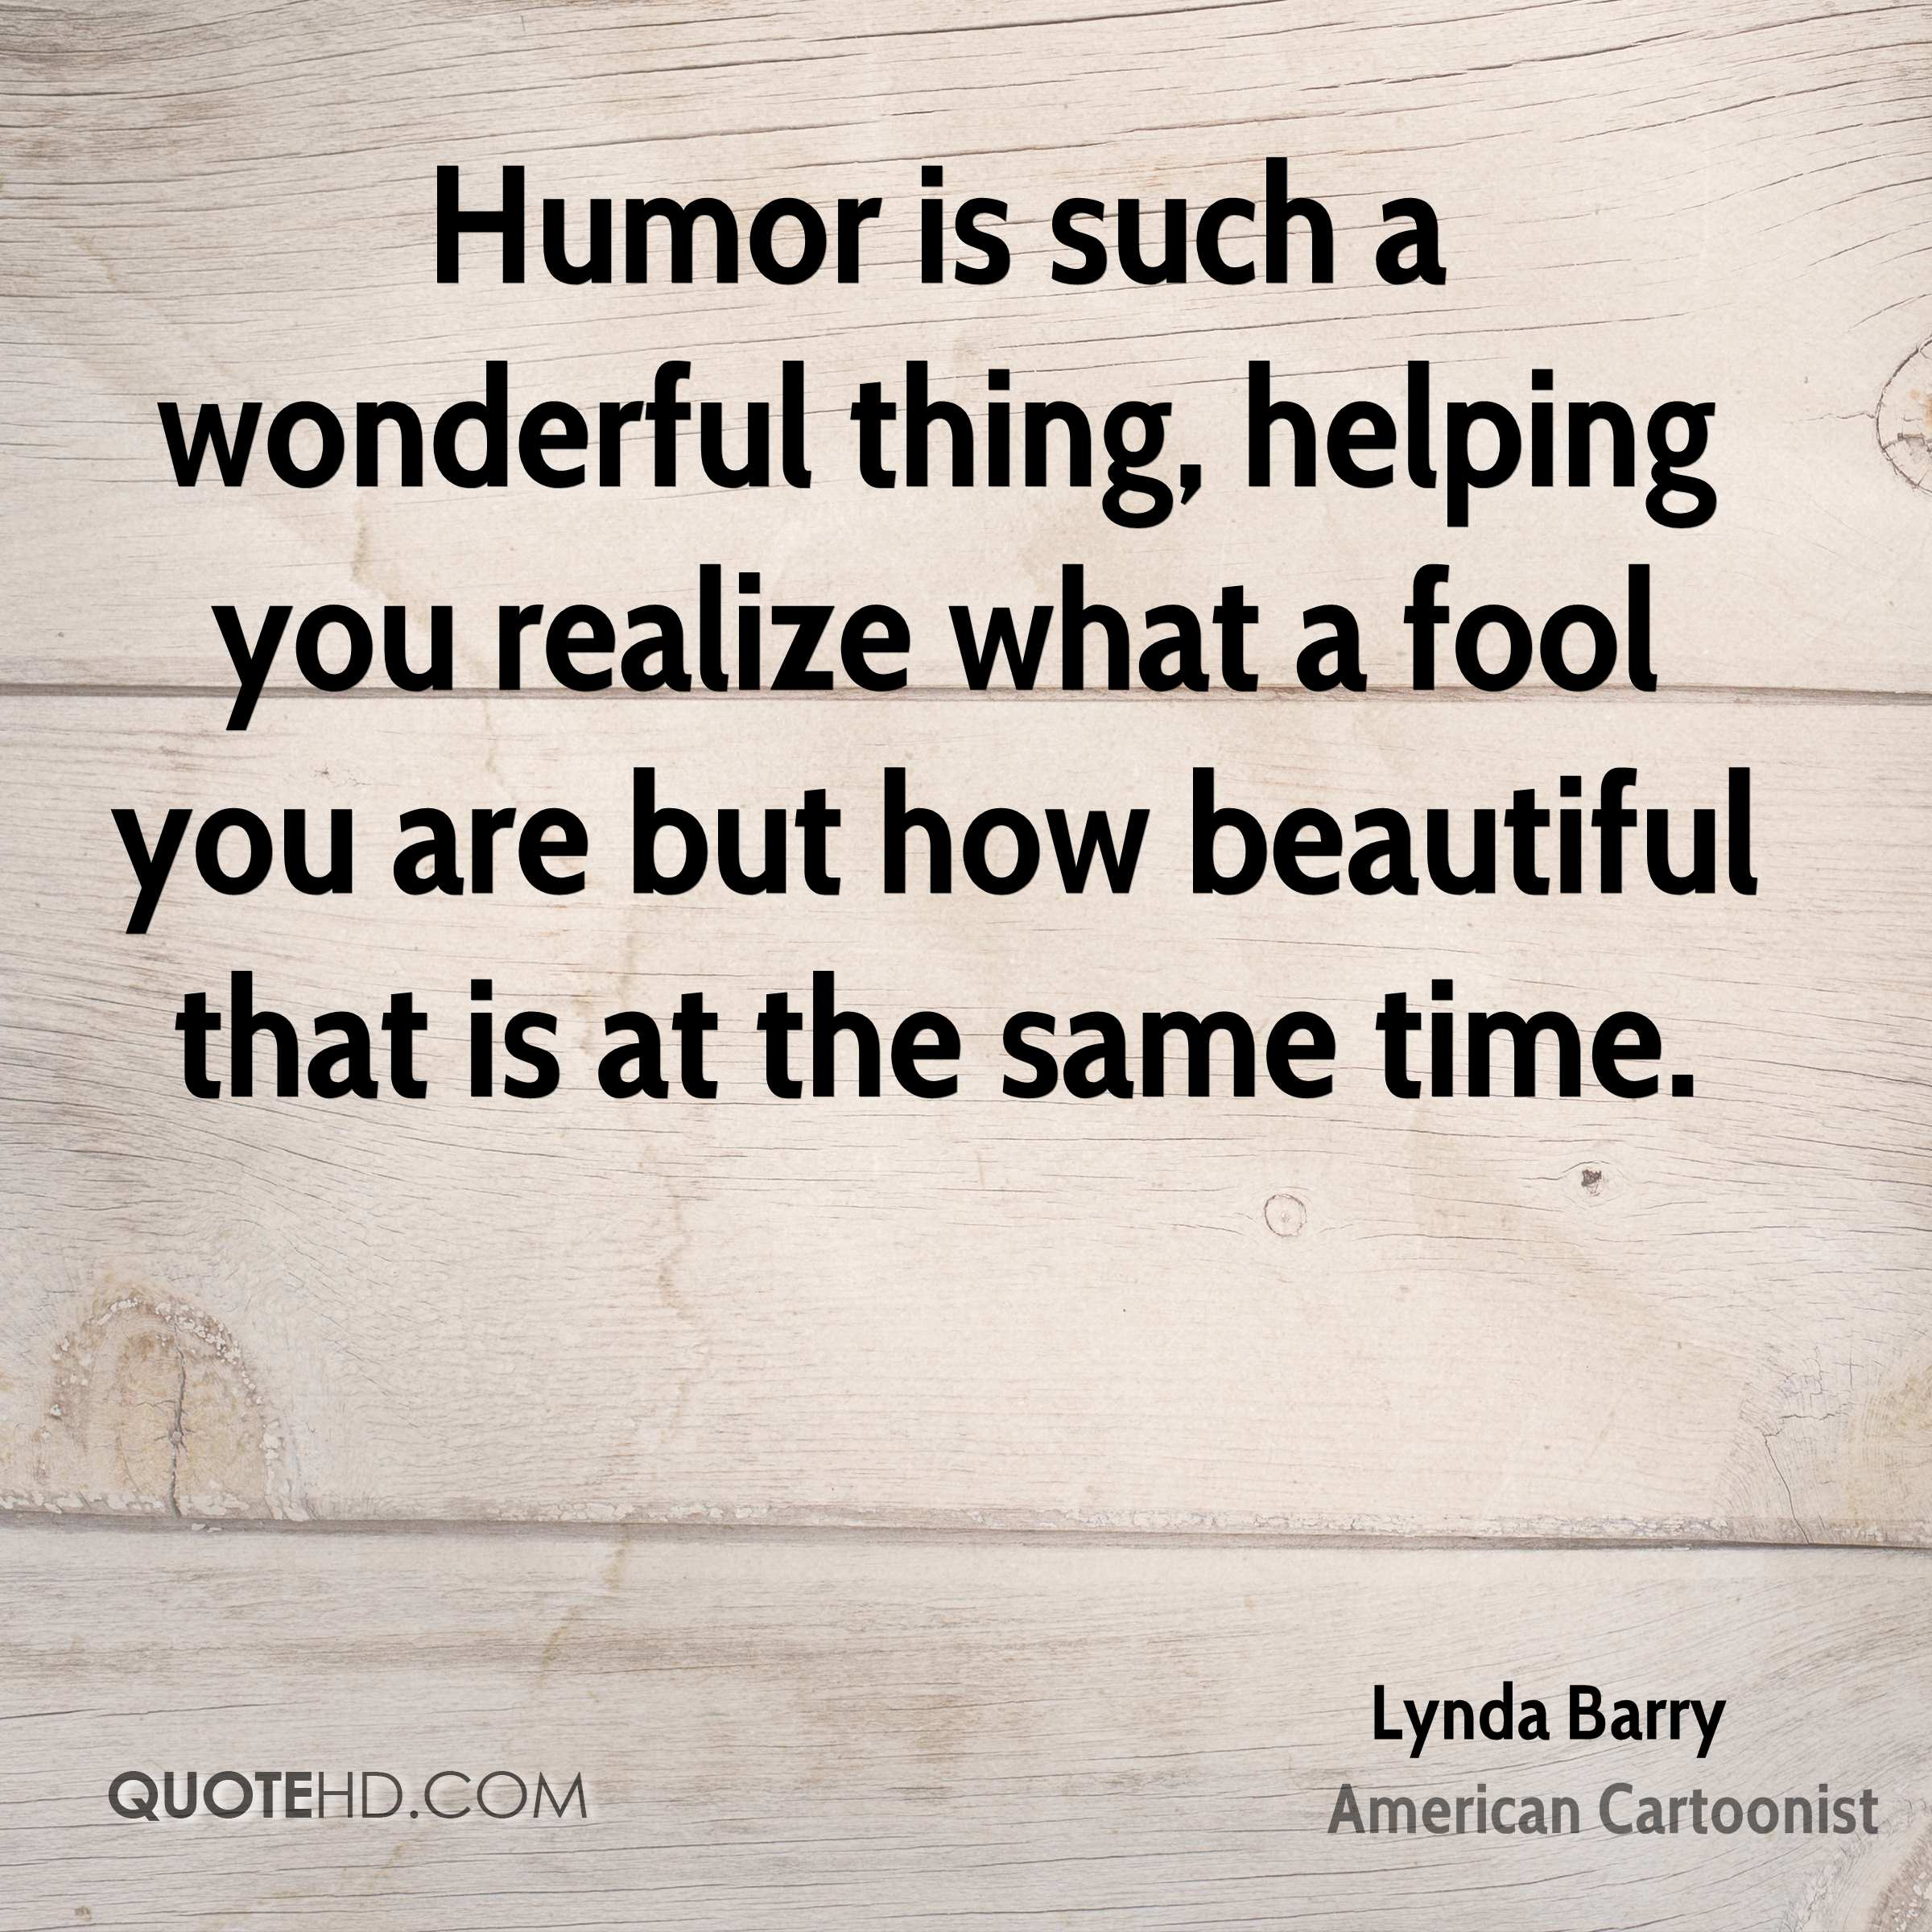 Humor is such a wonderful thing, helping you realize what a fool you are but how beautiful that is at the same time.